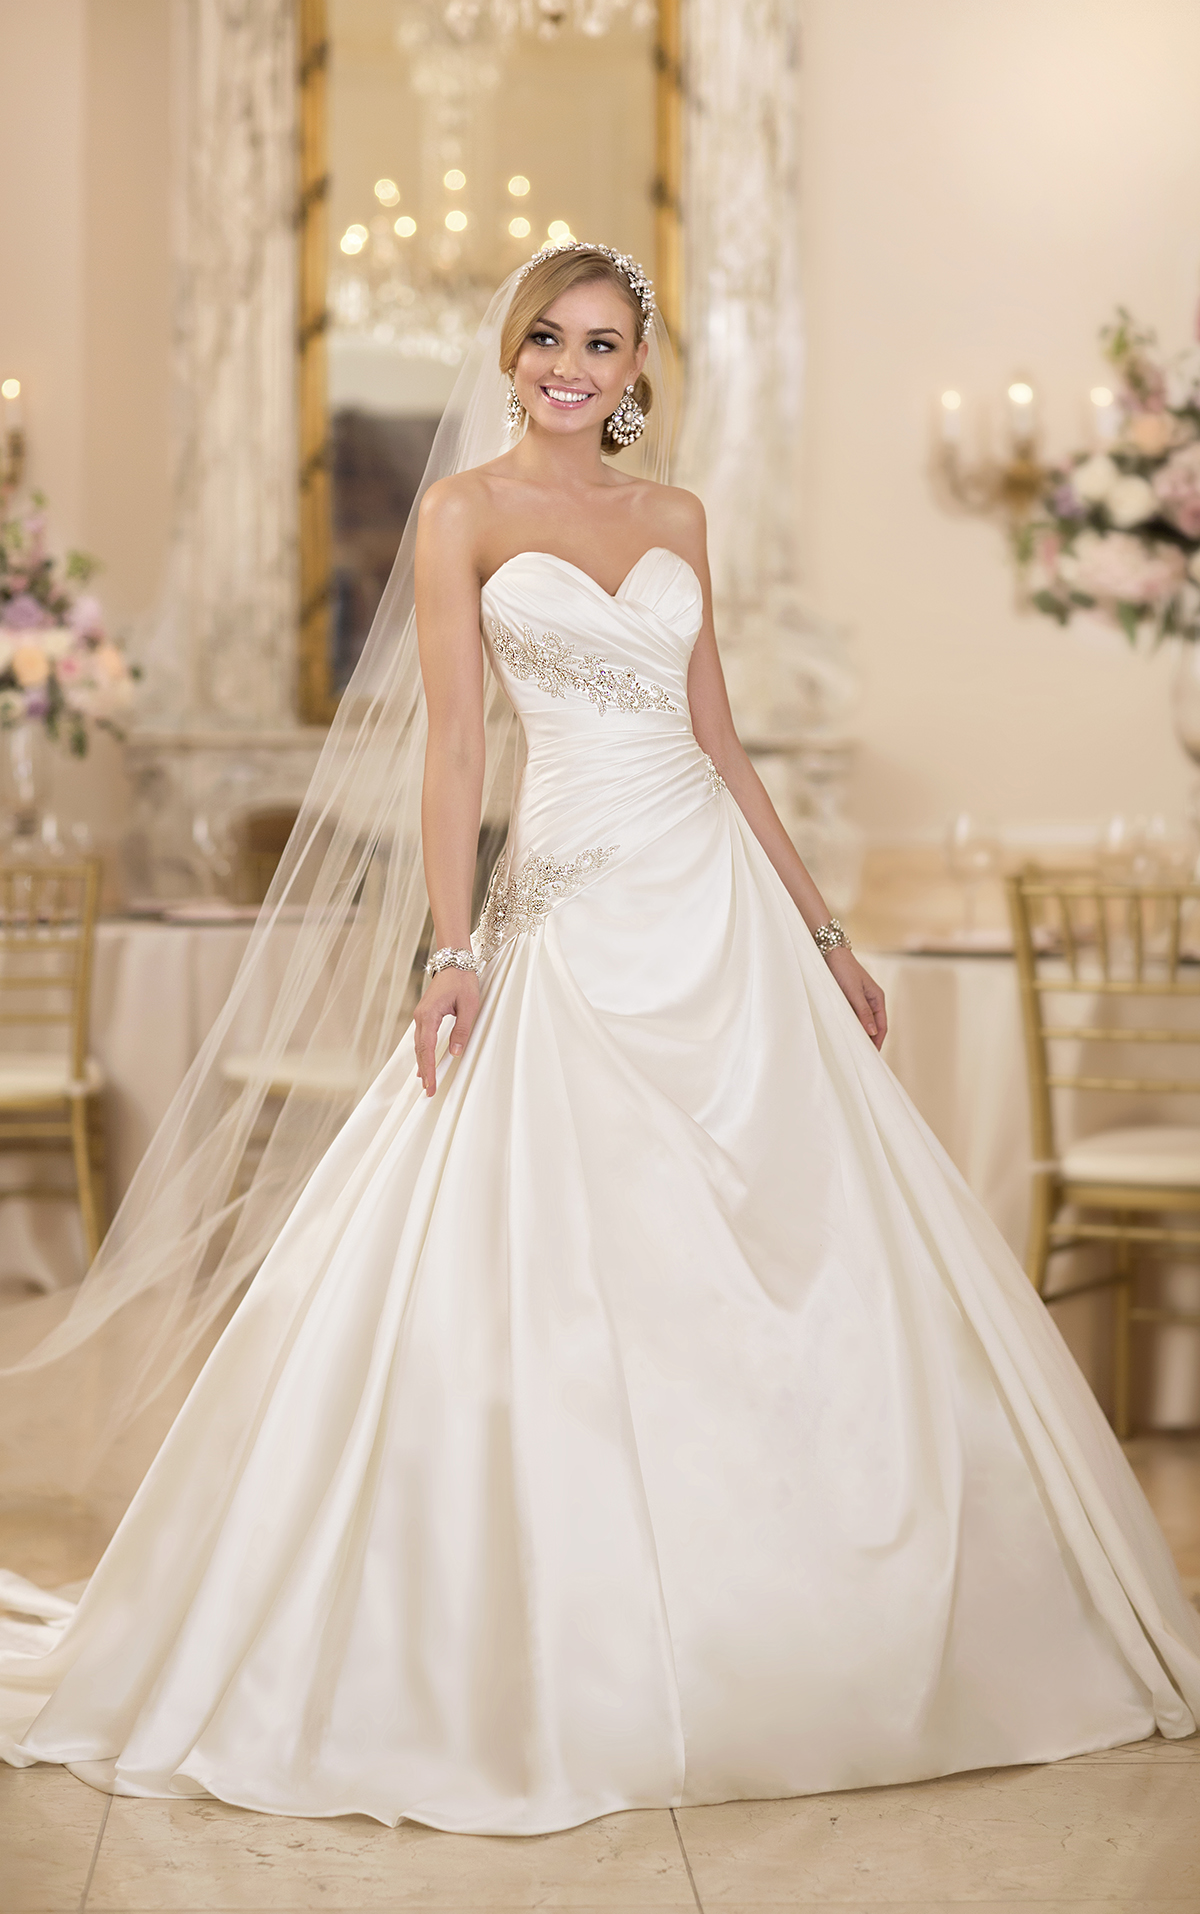 Extravagant stella york wedding dresses modwedding for Wedding dress shops york